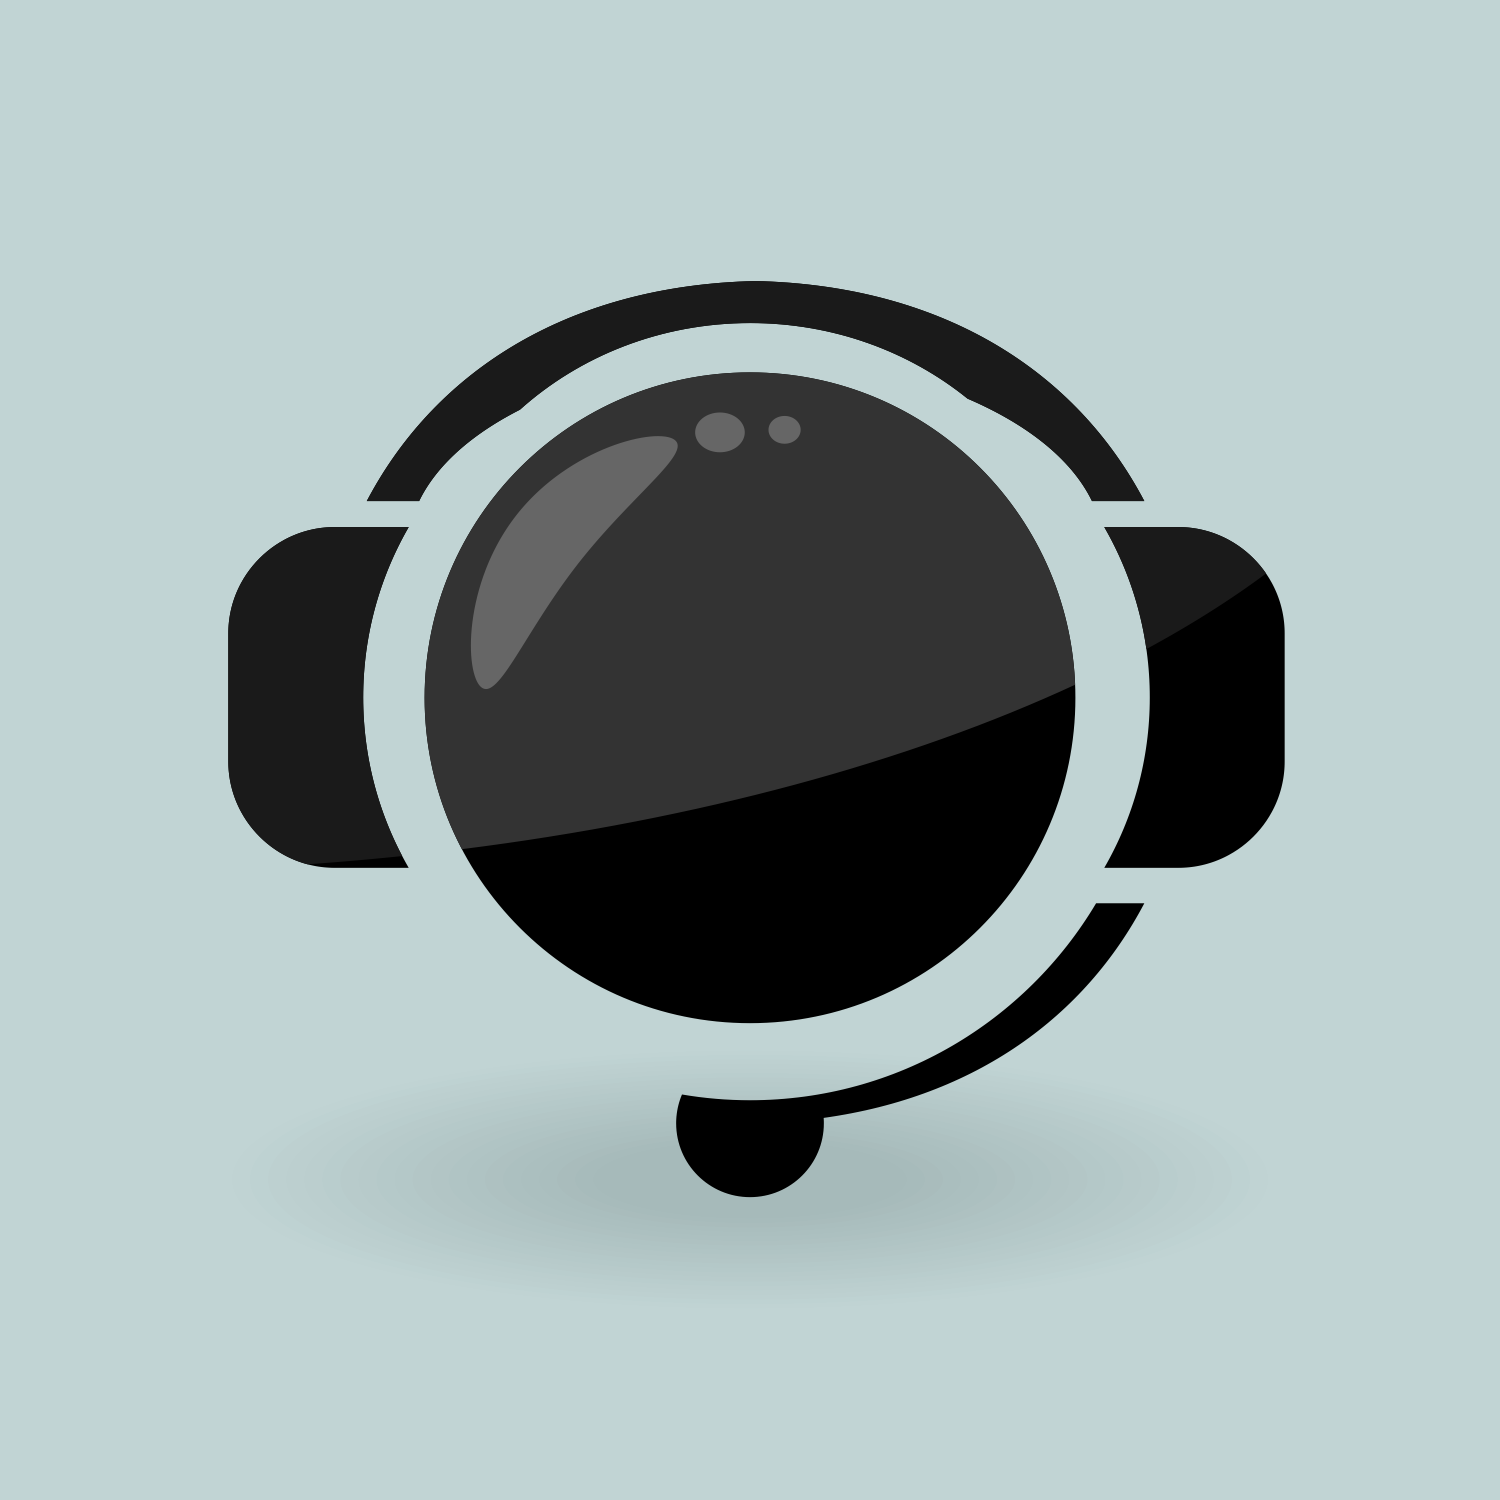 Vector for free use: Headset icon